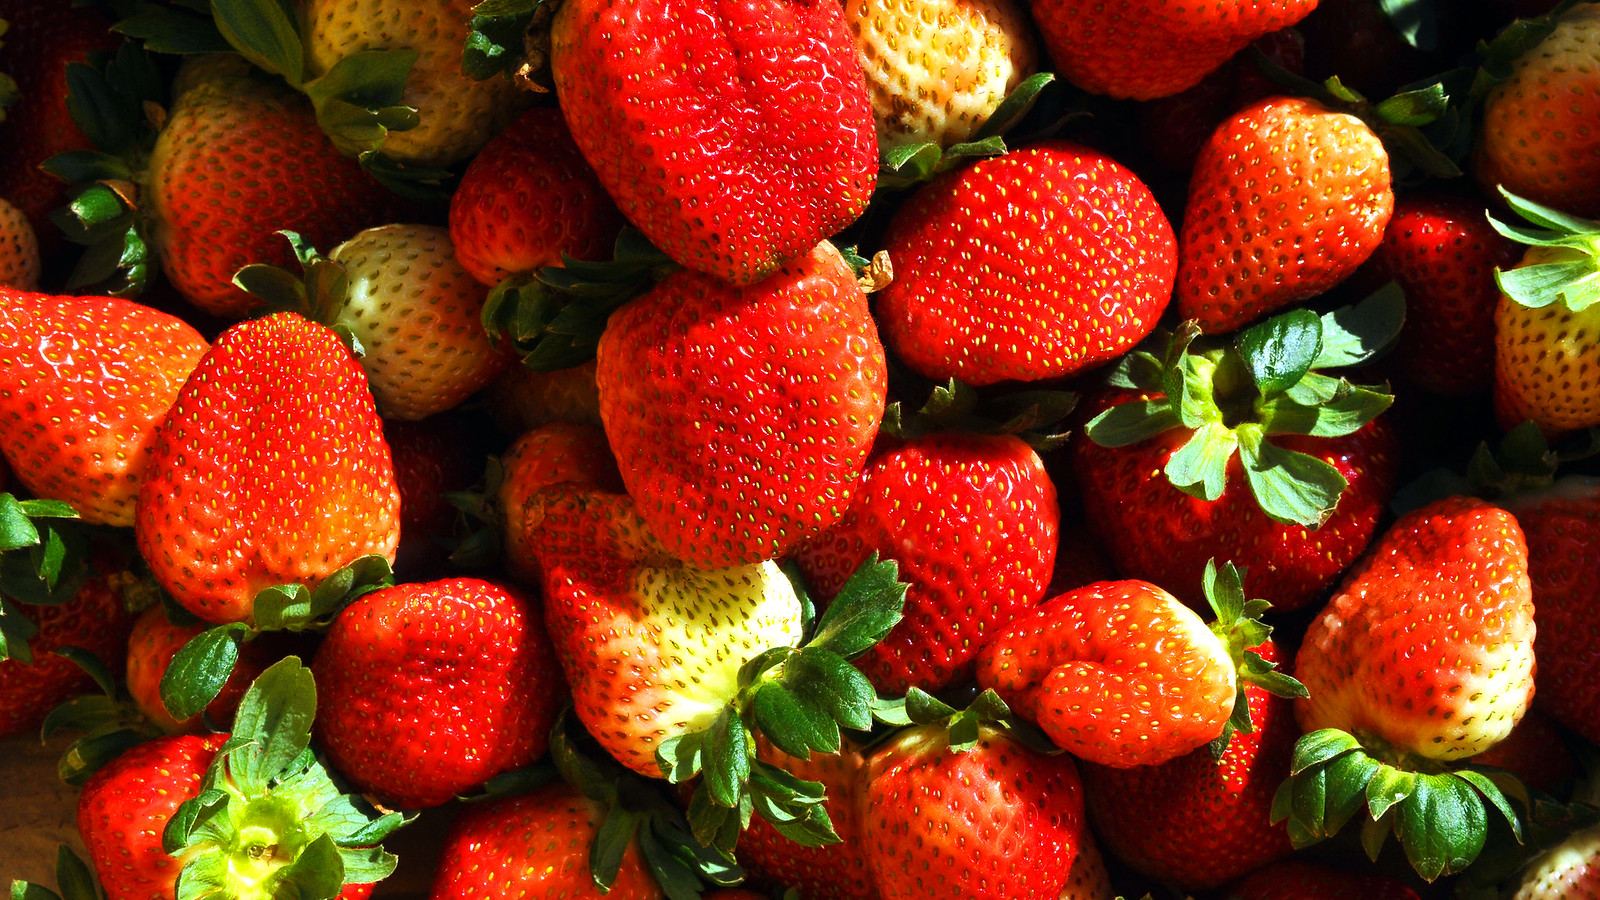 Vendemos todas las fresas (Video)